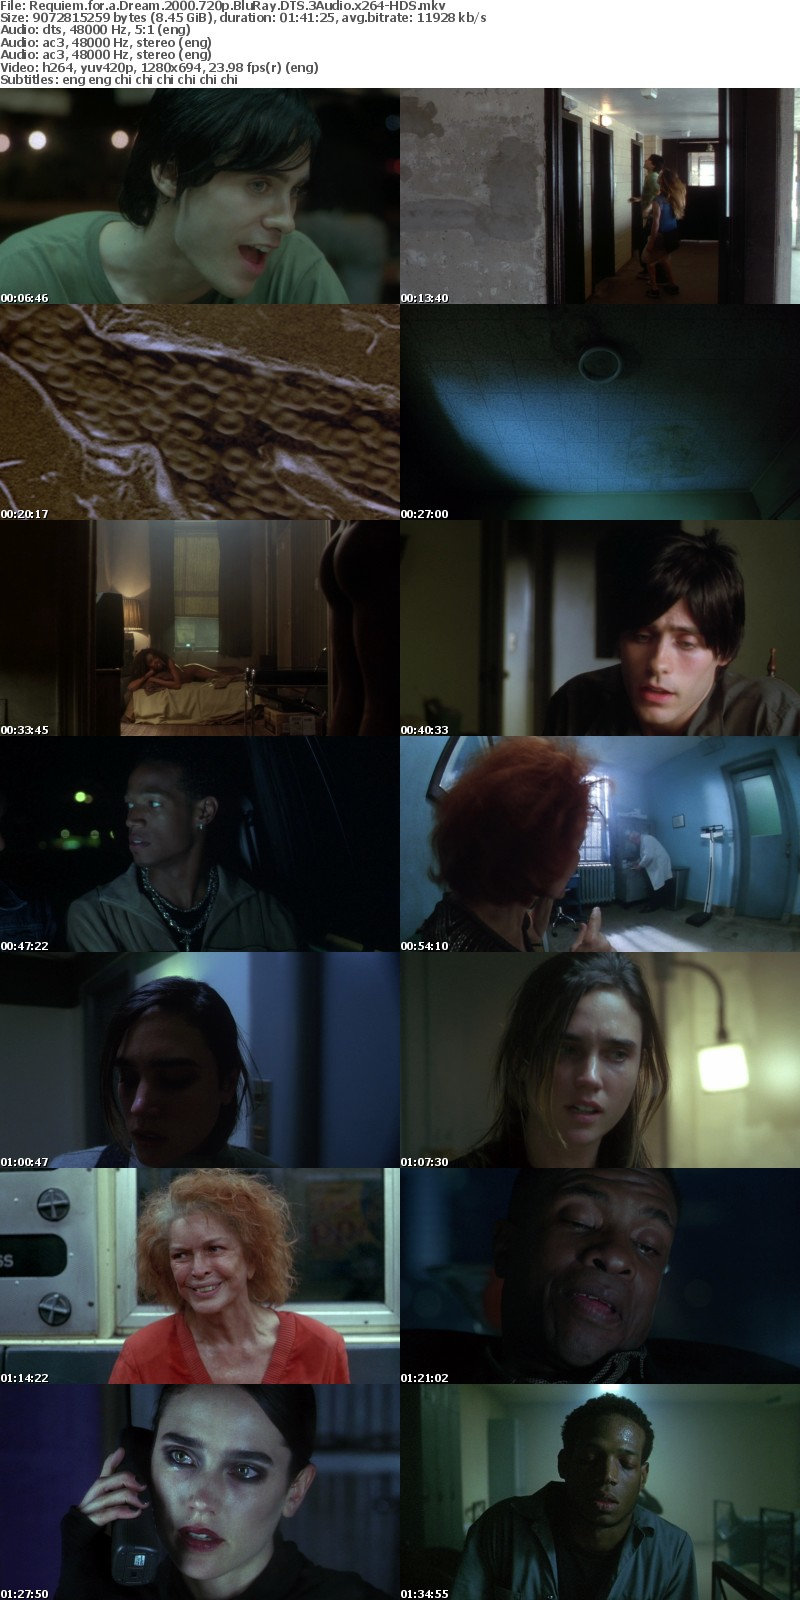 Requiem for a Dream (2000) 720p BluRay DTS 3Audio x264-HDS